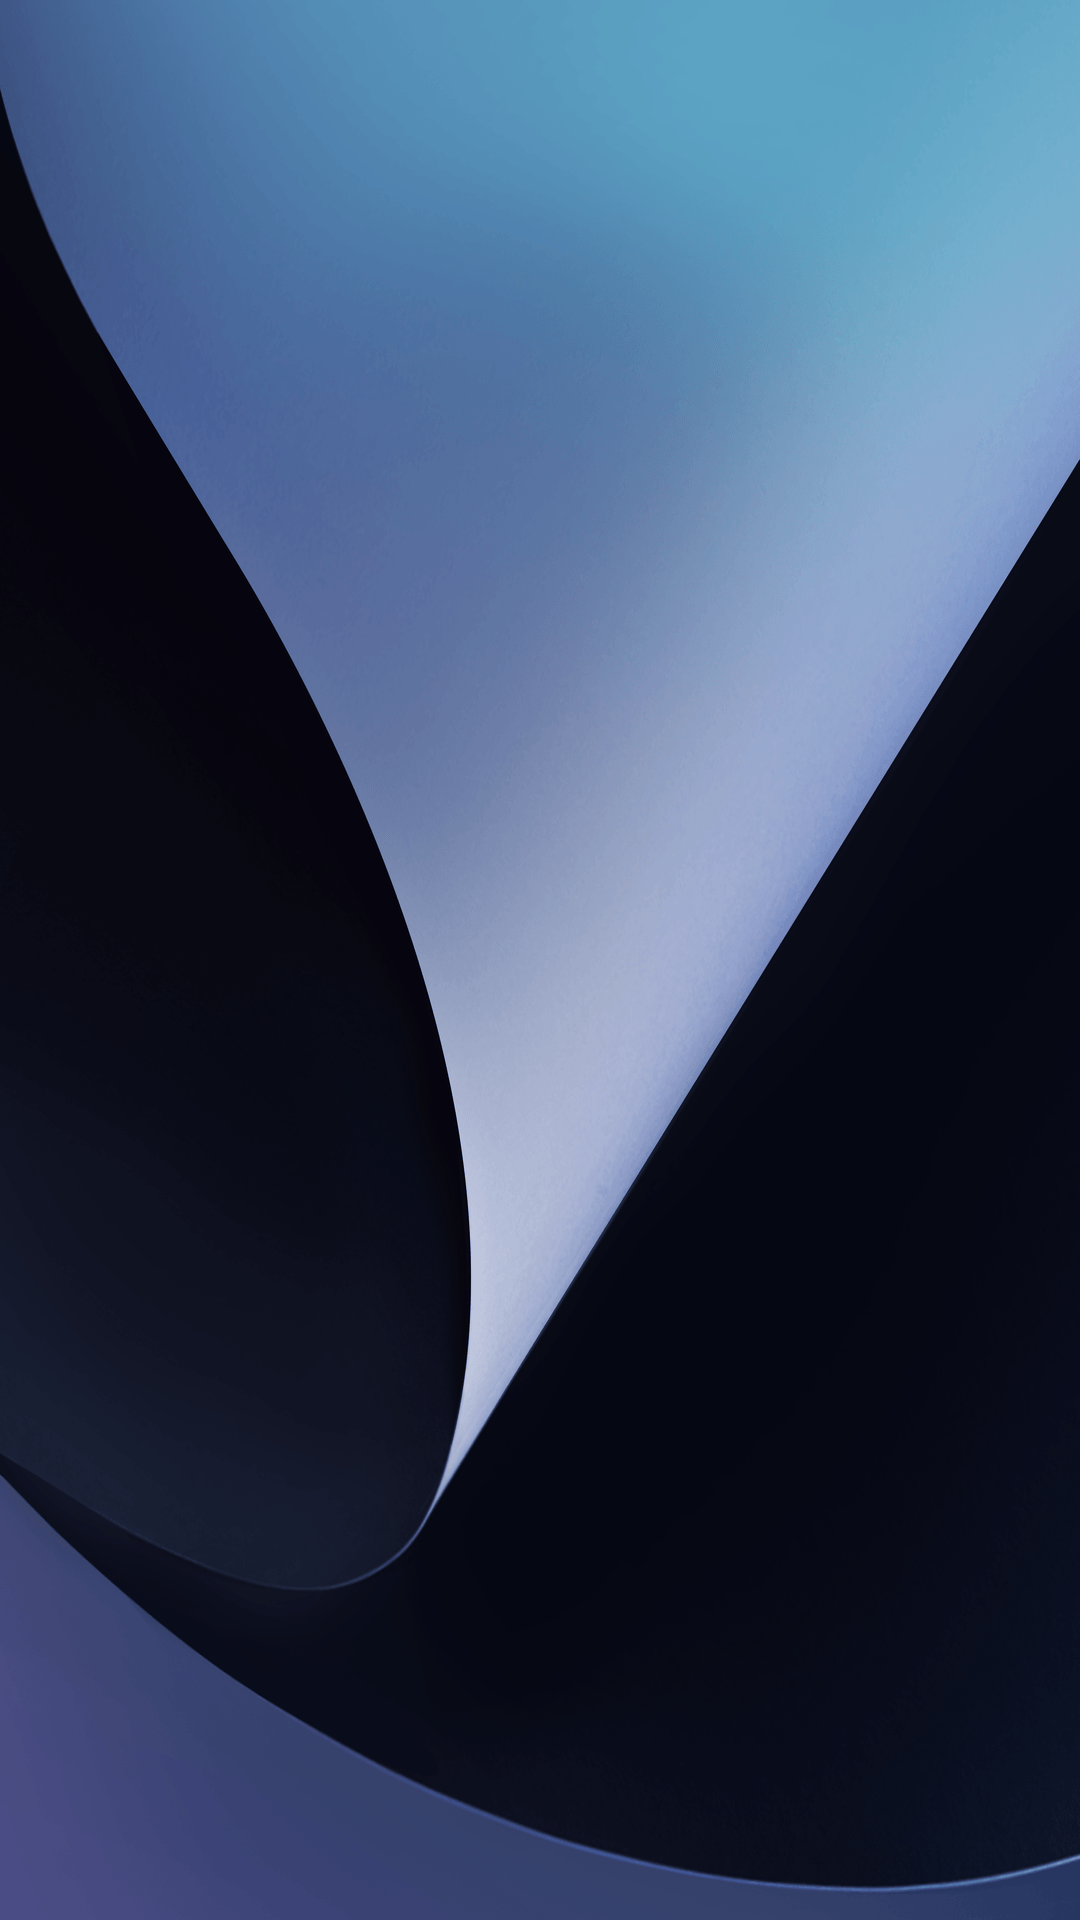 1080x1920 Download Android 9.0 Pie Wallpapers - Official Stock Images